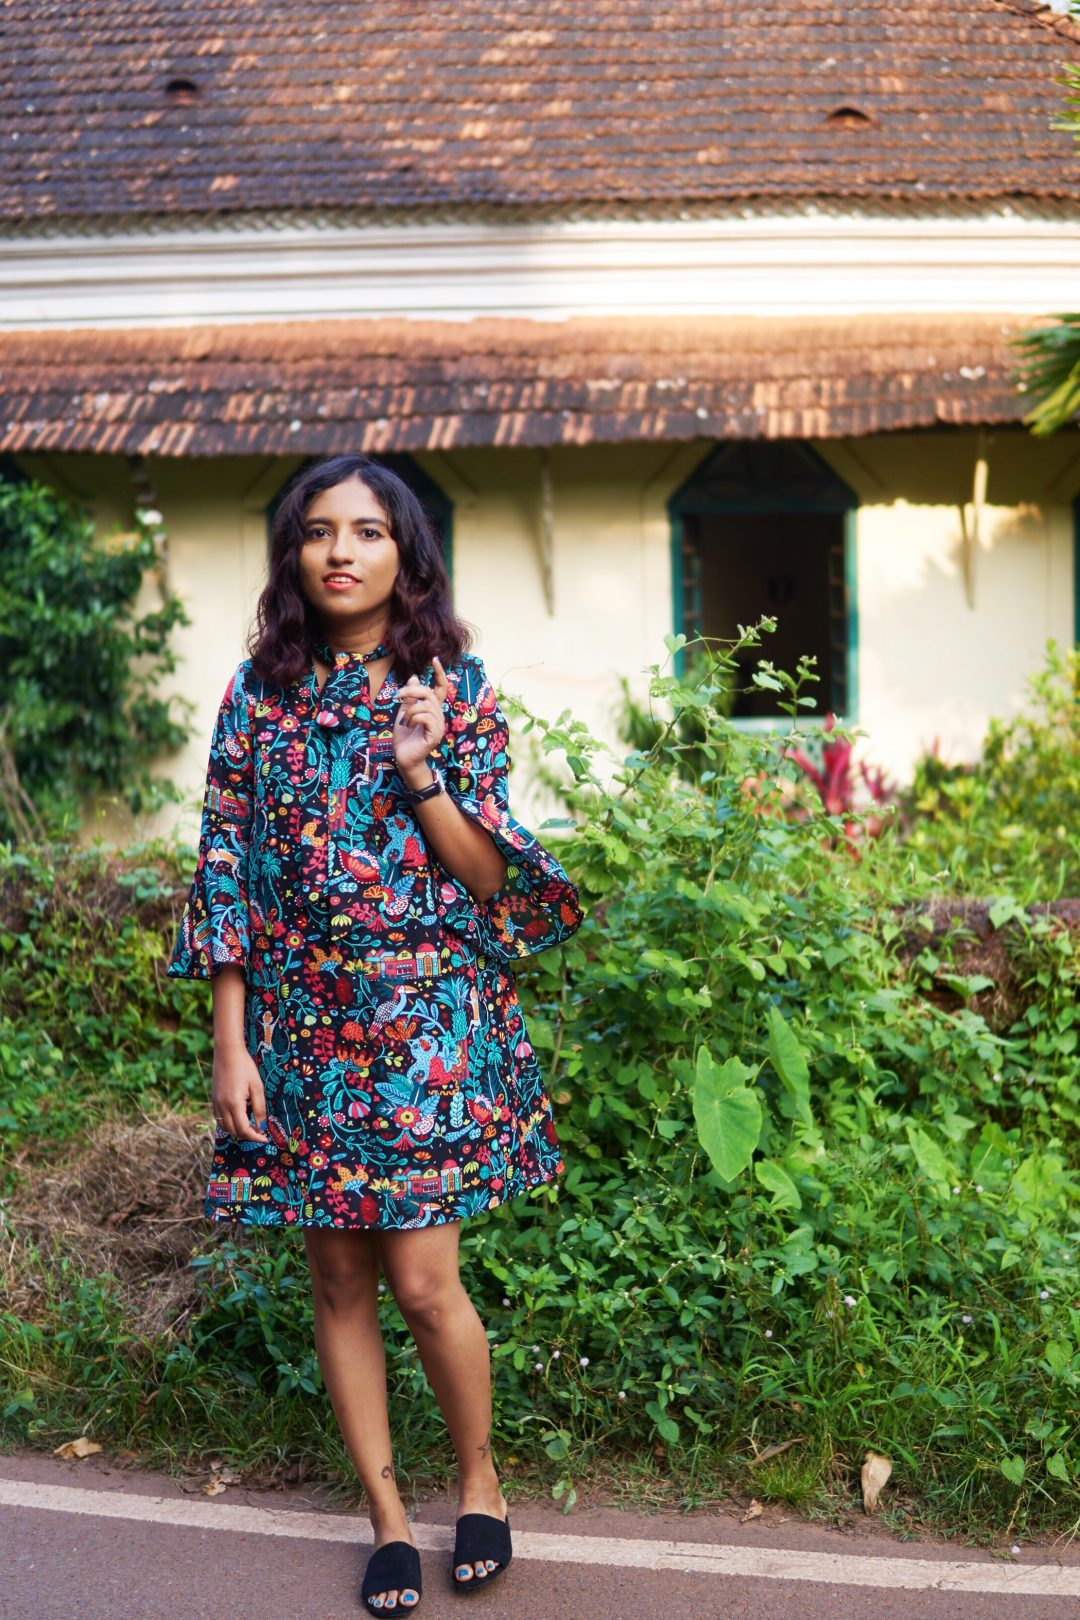 roots, a personal style edit in Goa